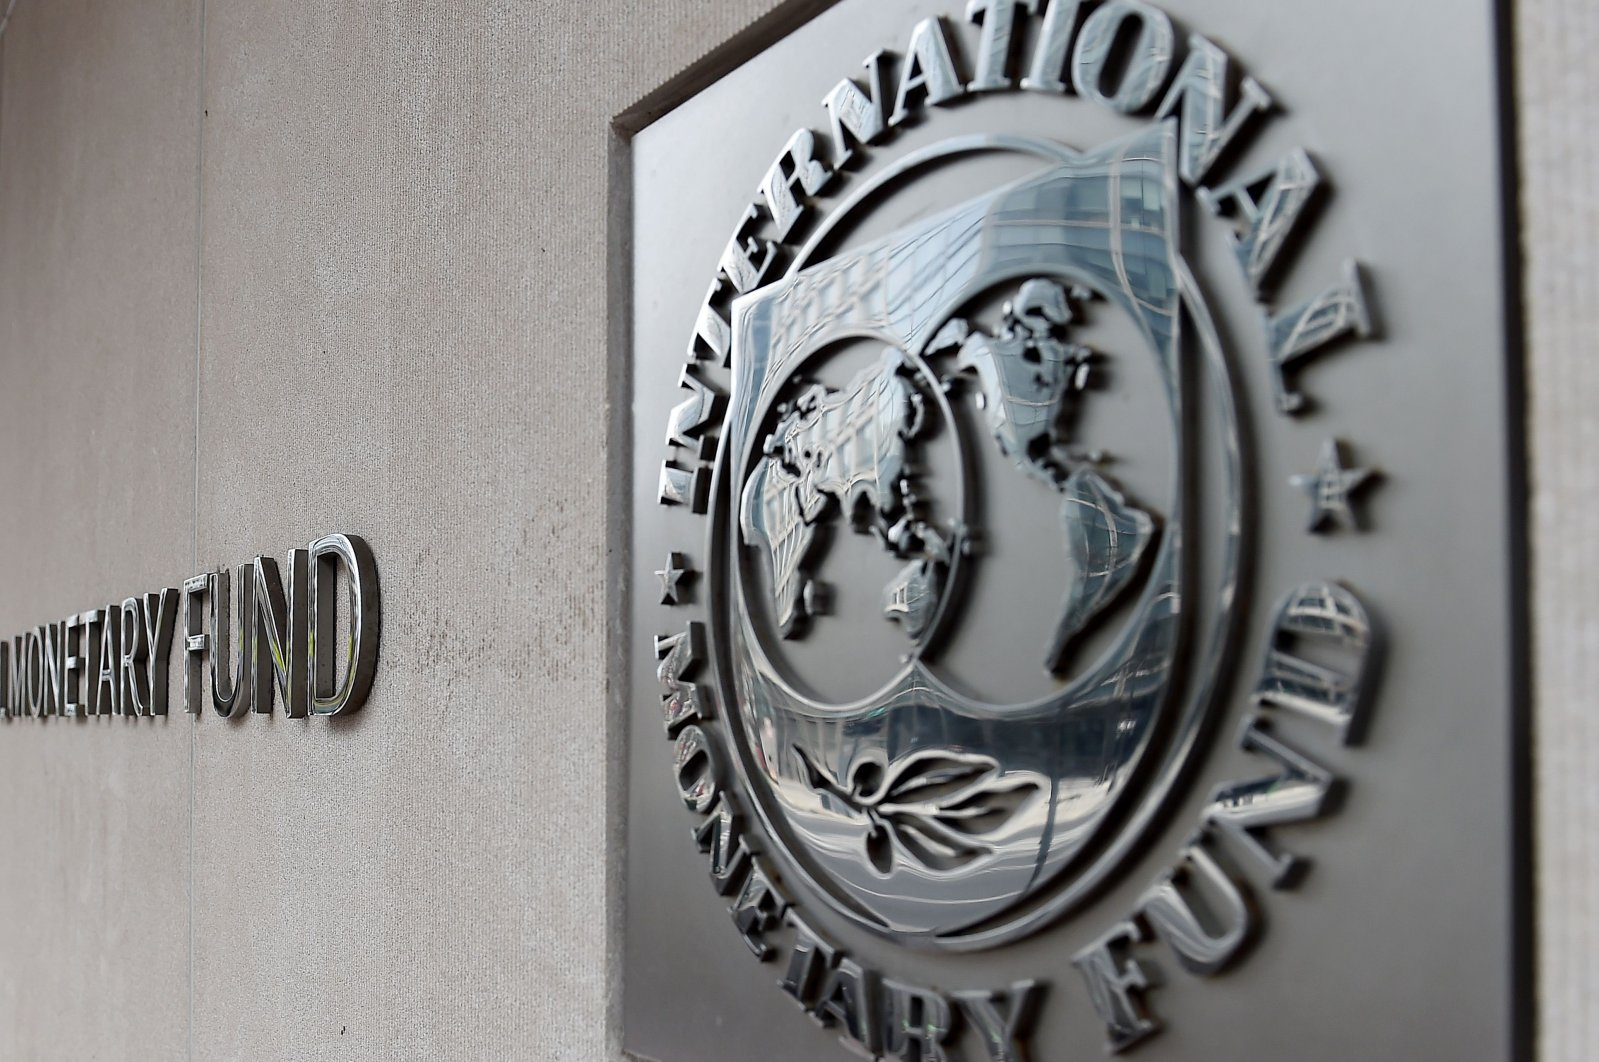 In this file photo an exterior view of the building of the International Monetary Fund (IMF), with the IMF logo, is seen on March 27, 2020 in Washington, D.C. (AFP Photo)